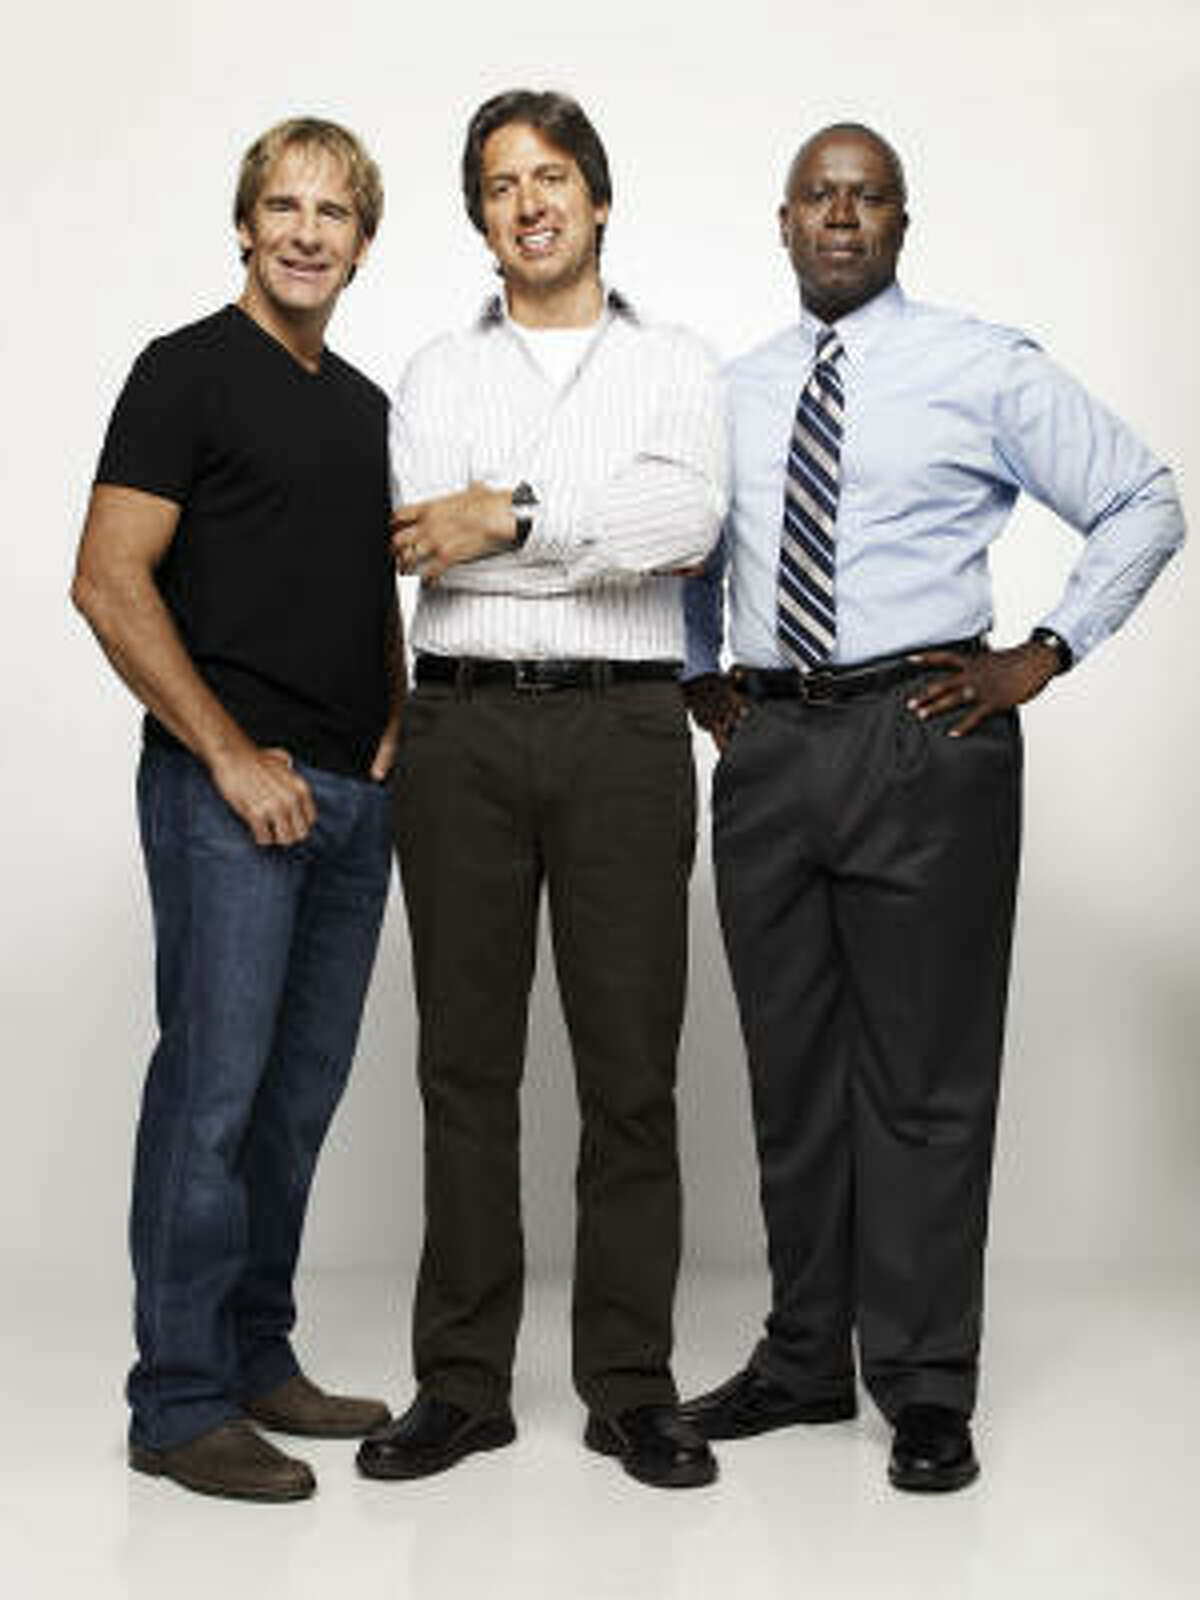 Scott Bakula, from left, Ray Romano and Andre Braugher play characters with midlife issues in the TNT comedy-drama series Men of a Certain Age.